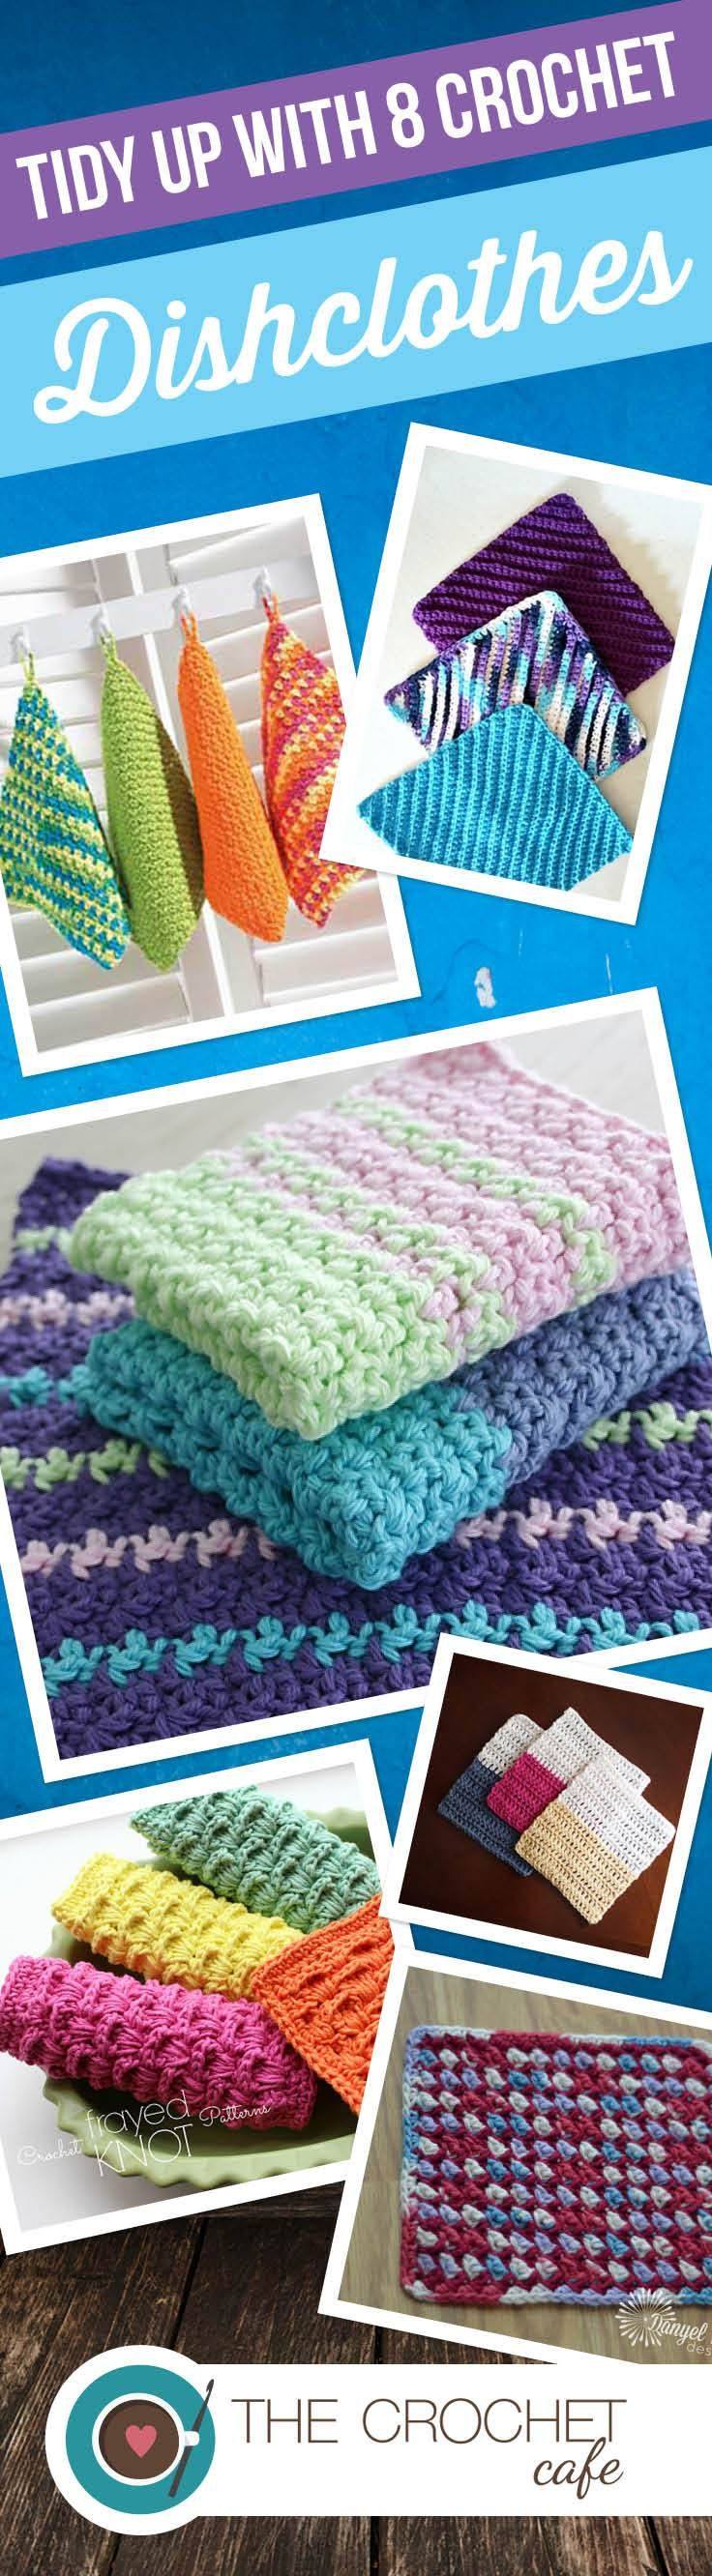 Tidy up with 8 Crochet Dishclothes (Pinterest)